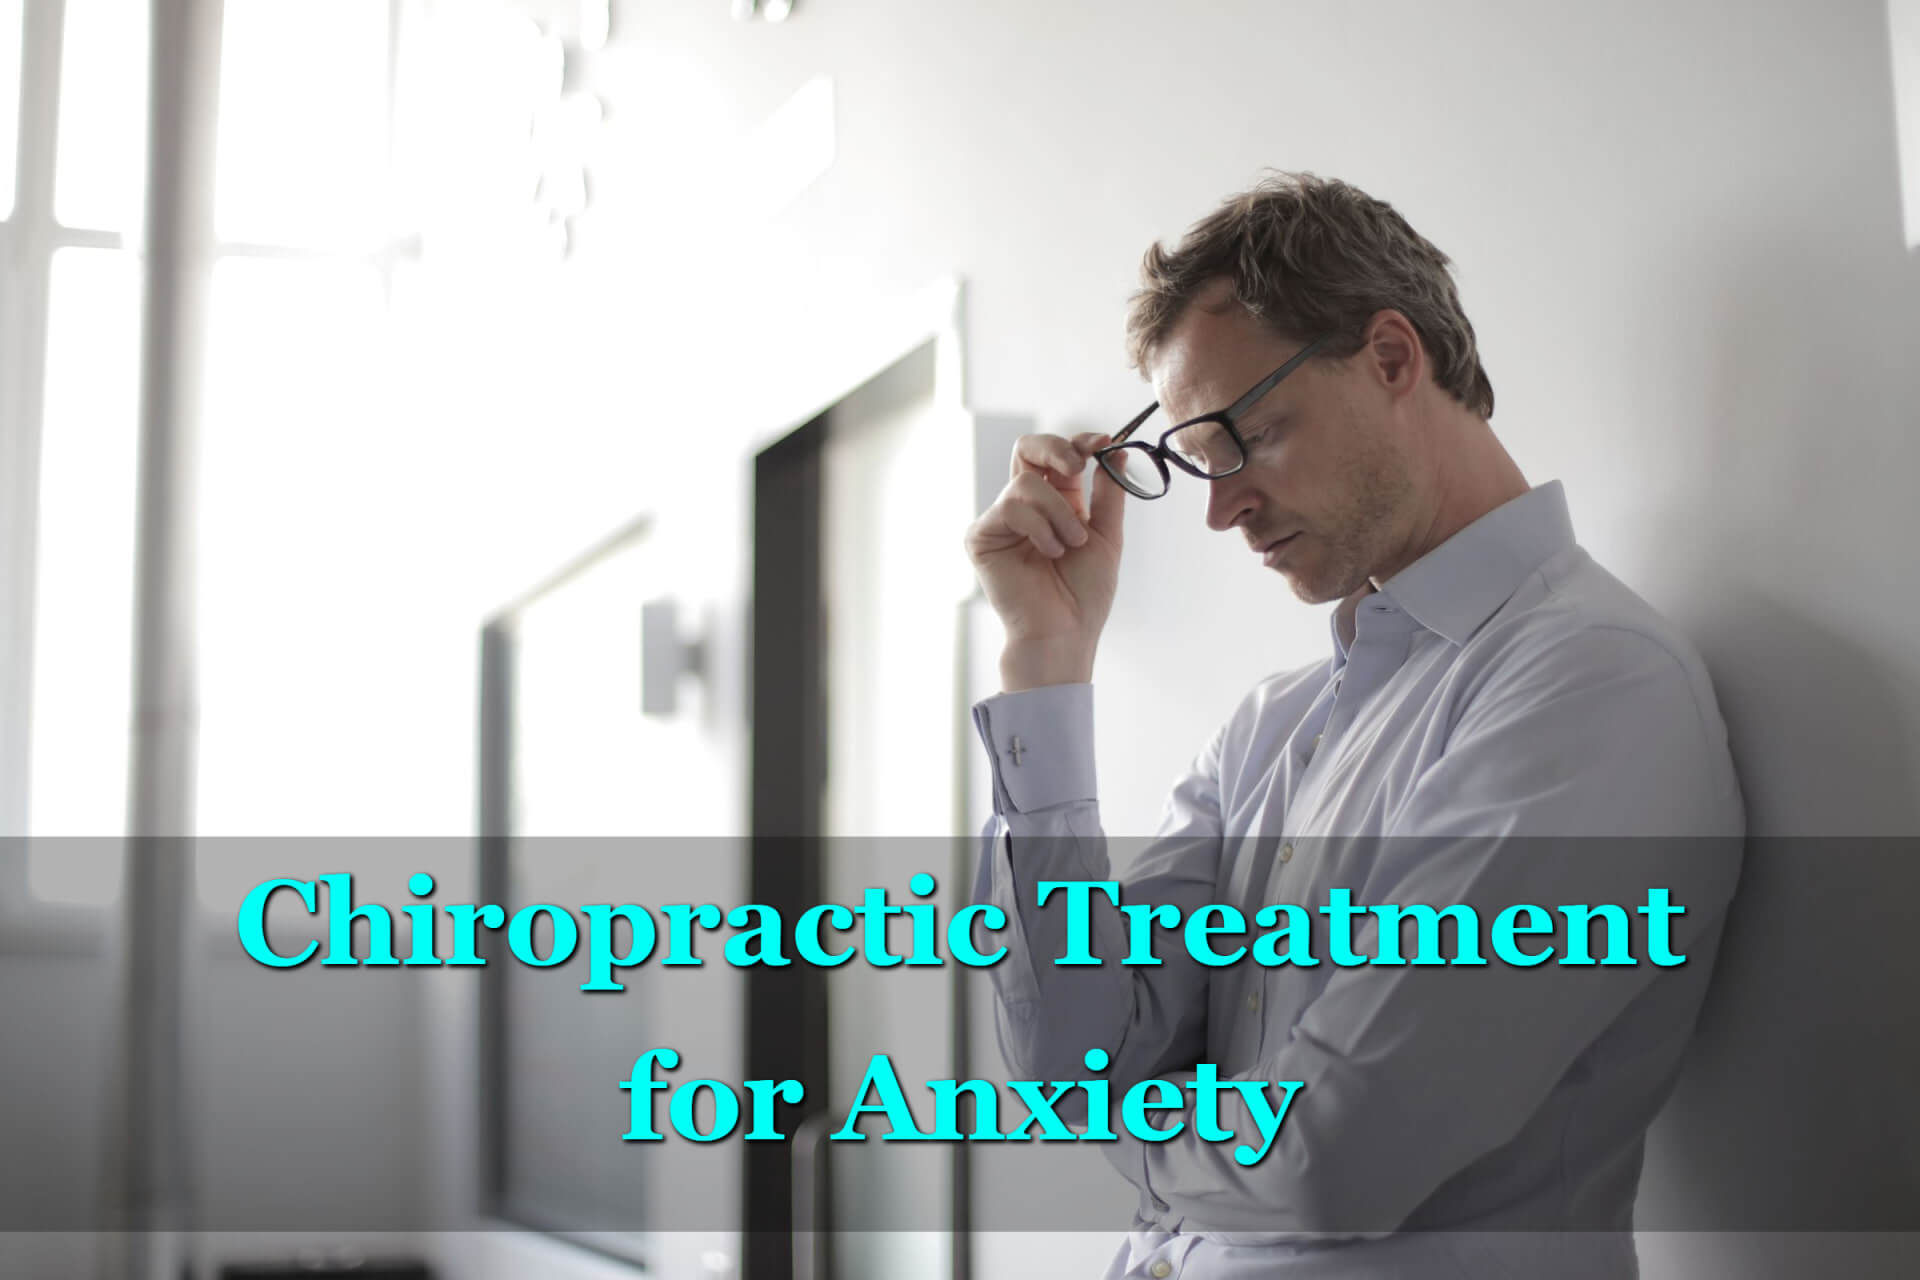 Chiropractic Care for Anxiety - A Unique but Effective Solution